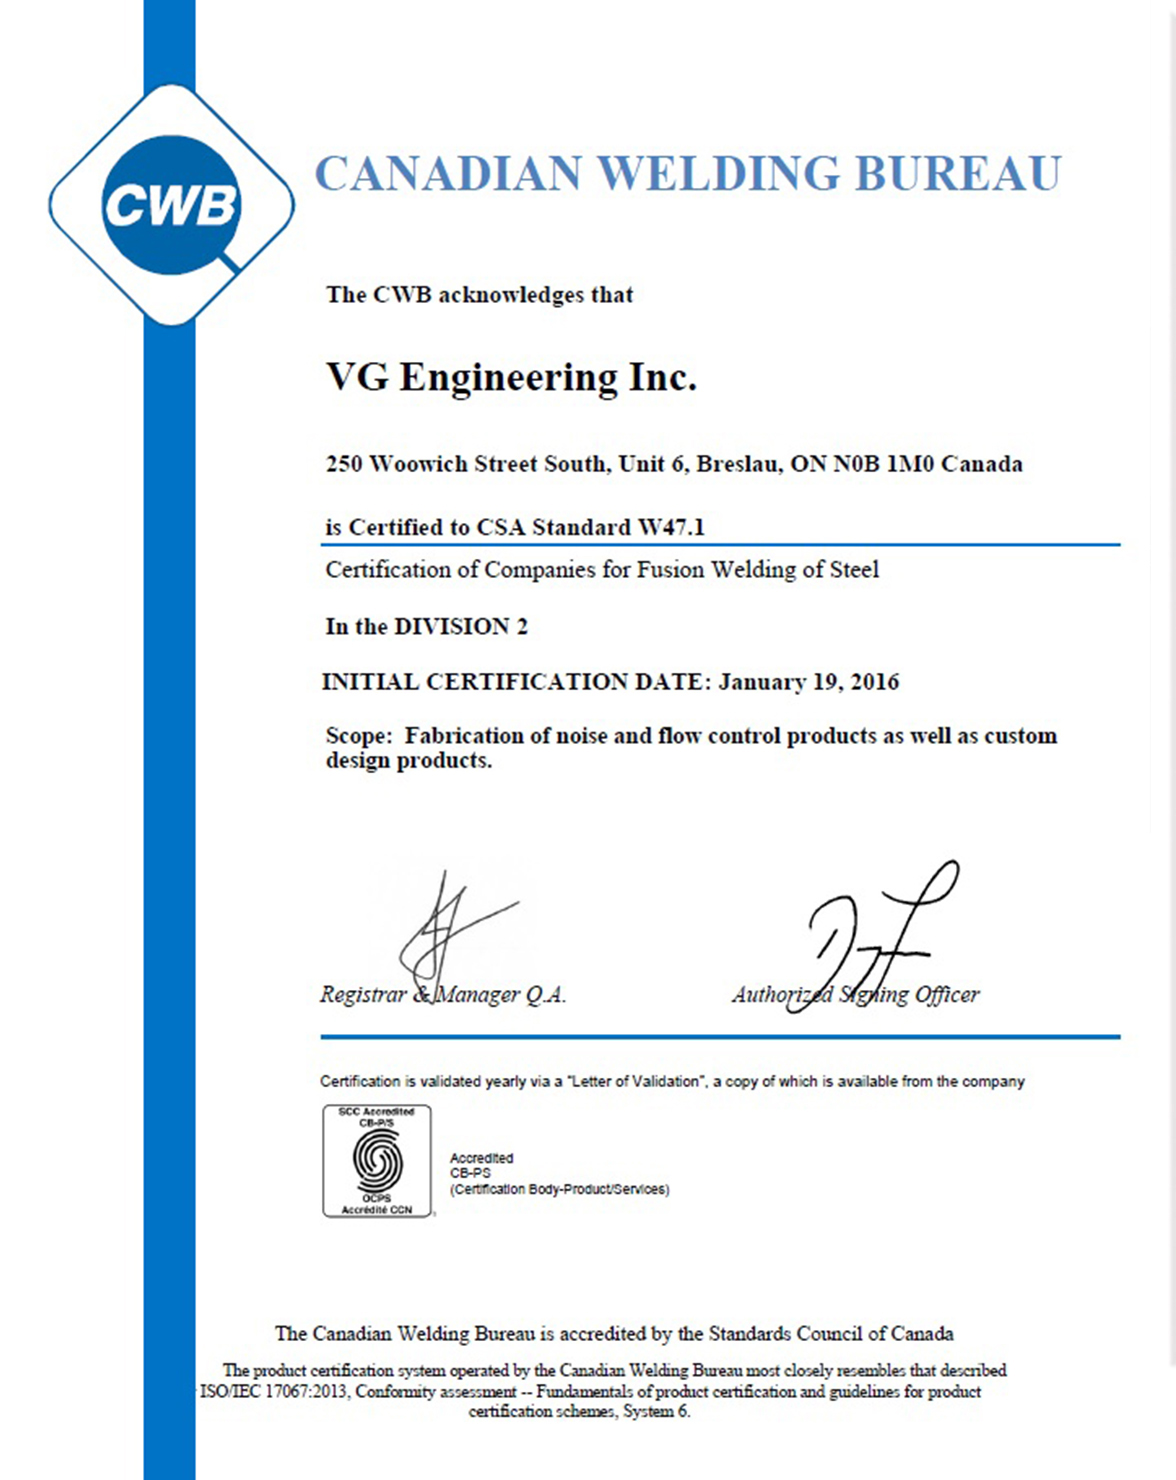 Certification and quality system vg engineering csa b51 boiler pressure vessel and pressure piping and asme b313 process piping 1betcityfo Choice Image